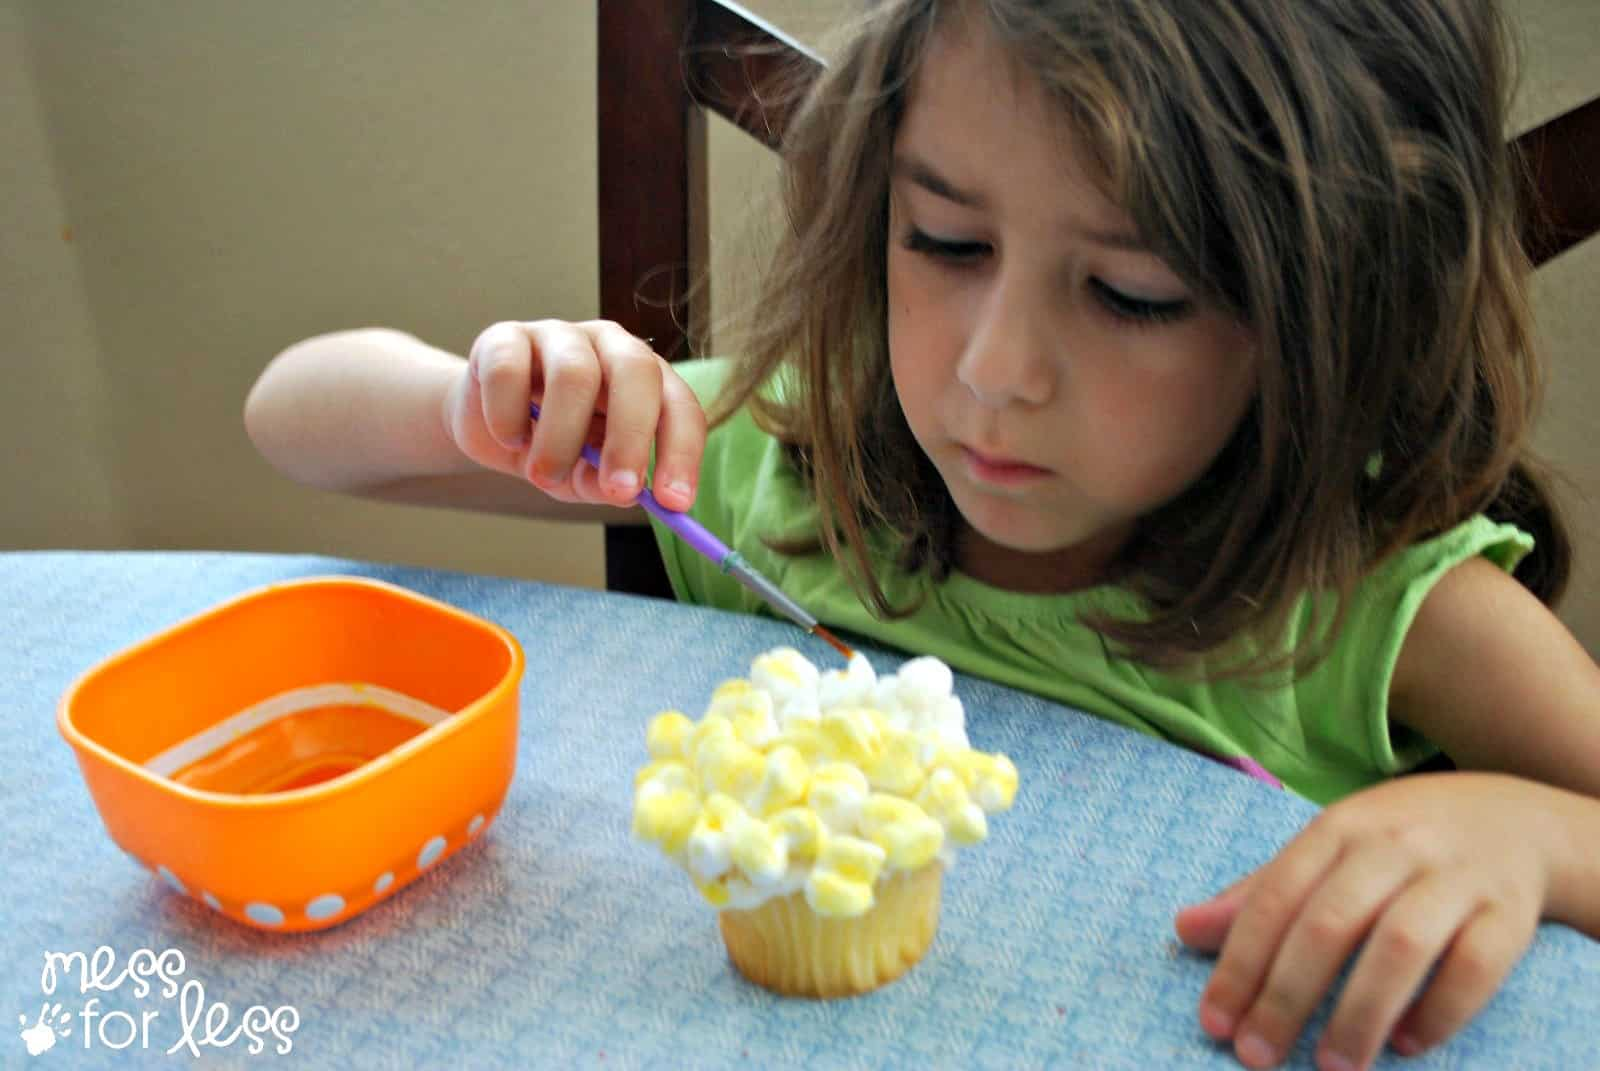 decorating popcorn cupcakes